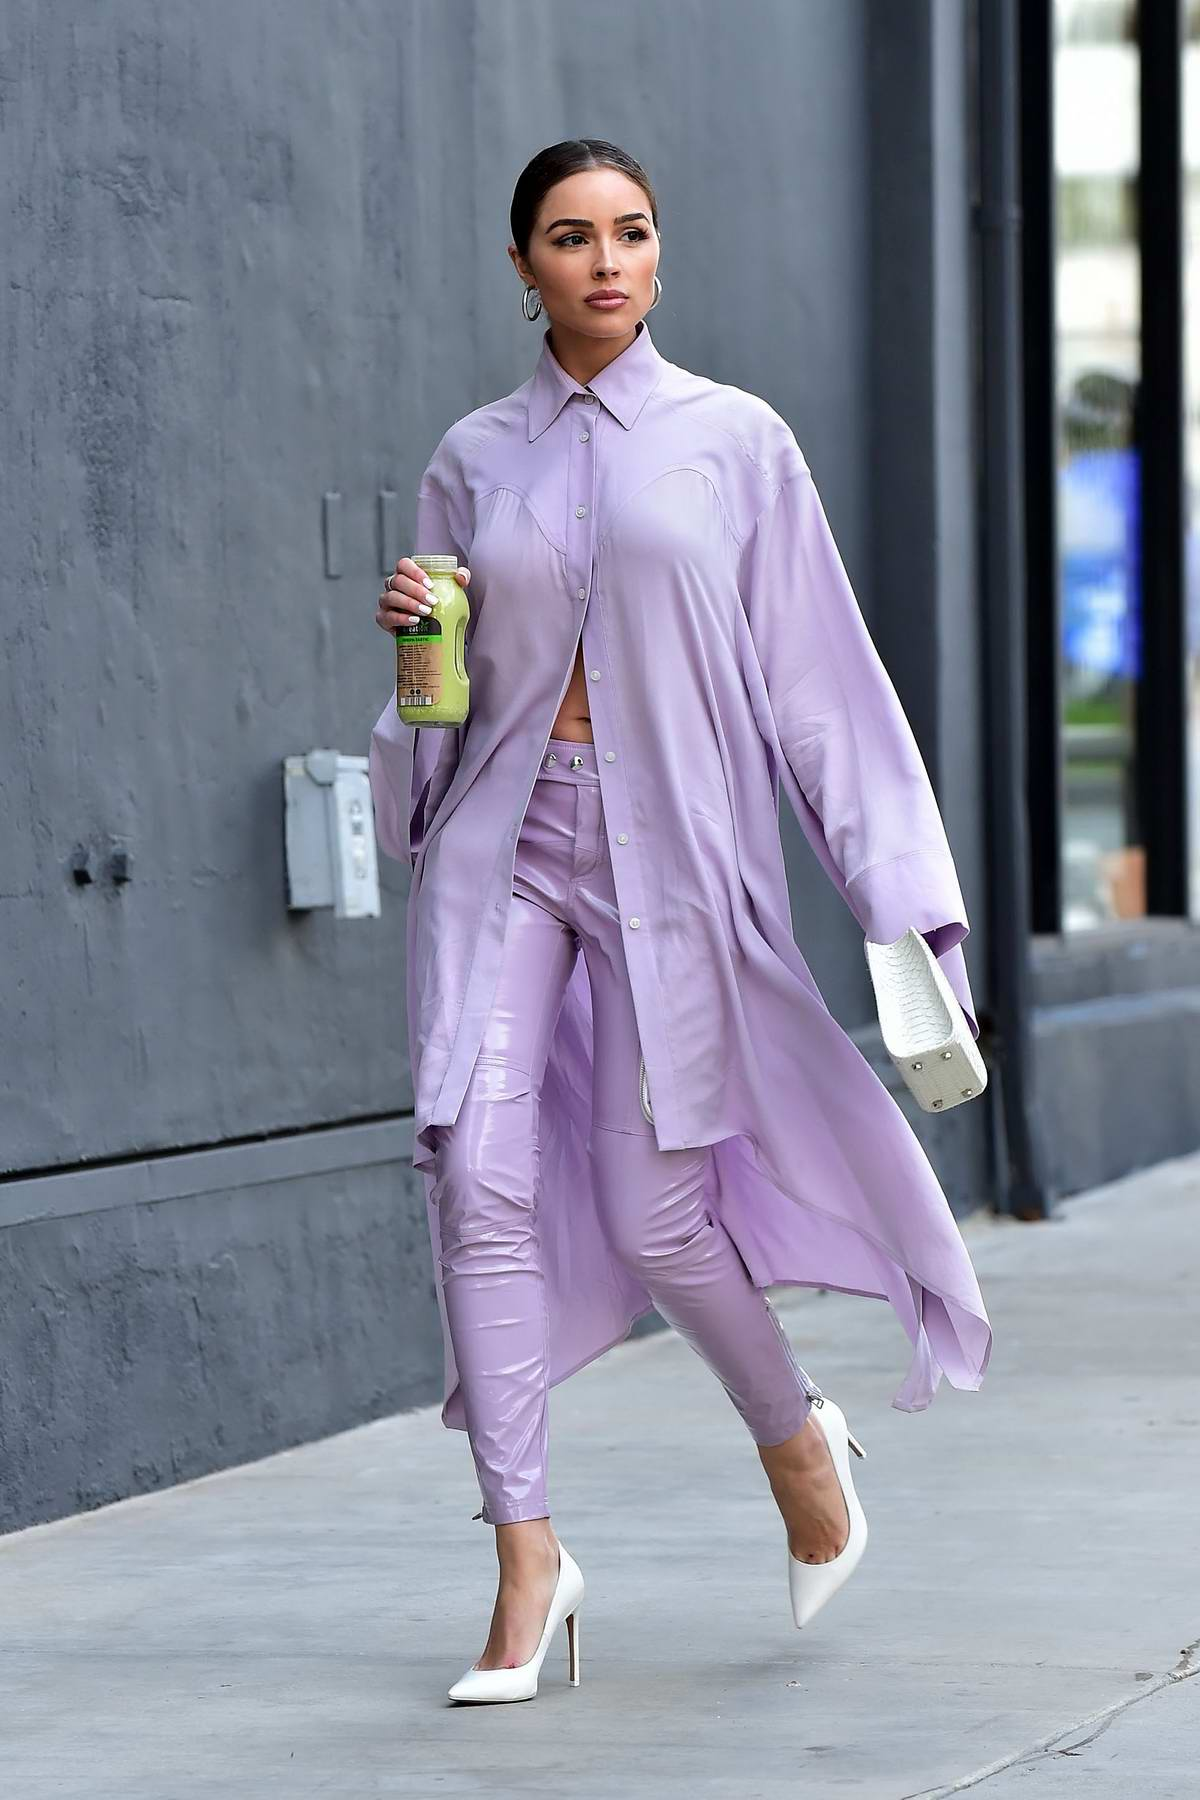 Olivia Culpo stuns in a purple while out for meeting in Santa Monica, California